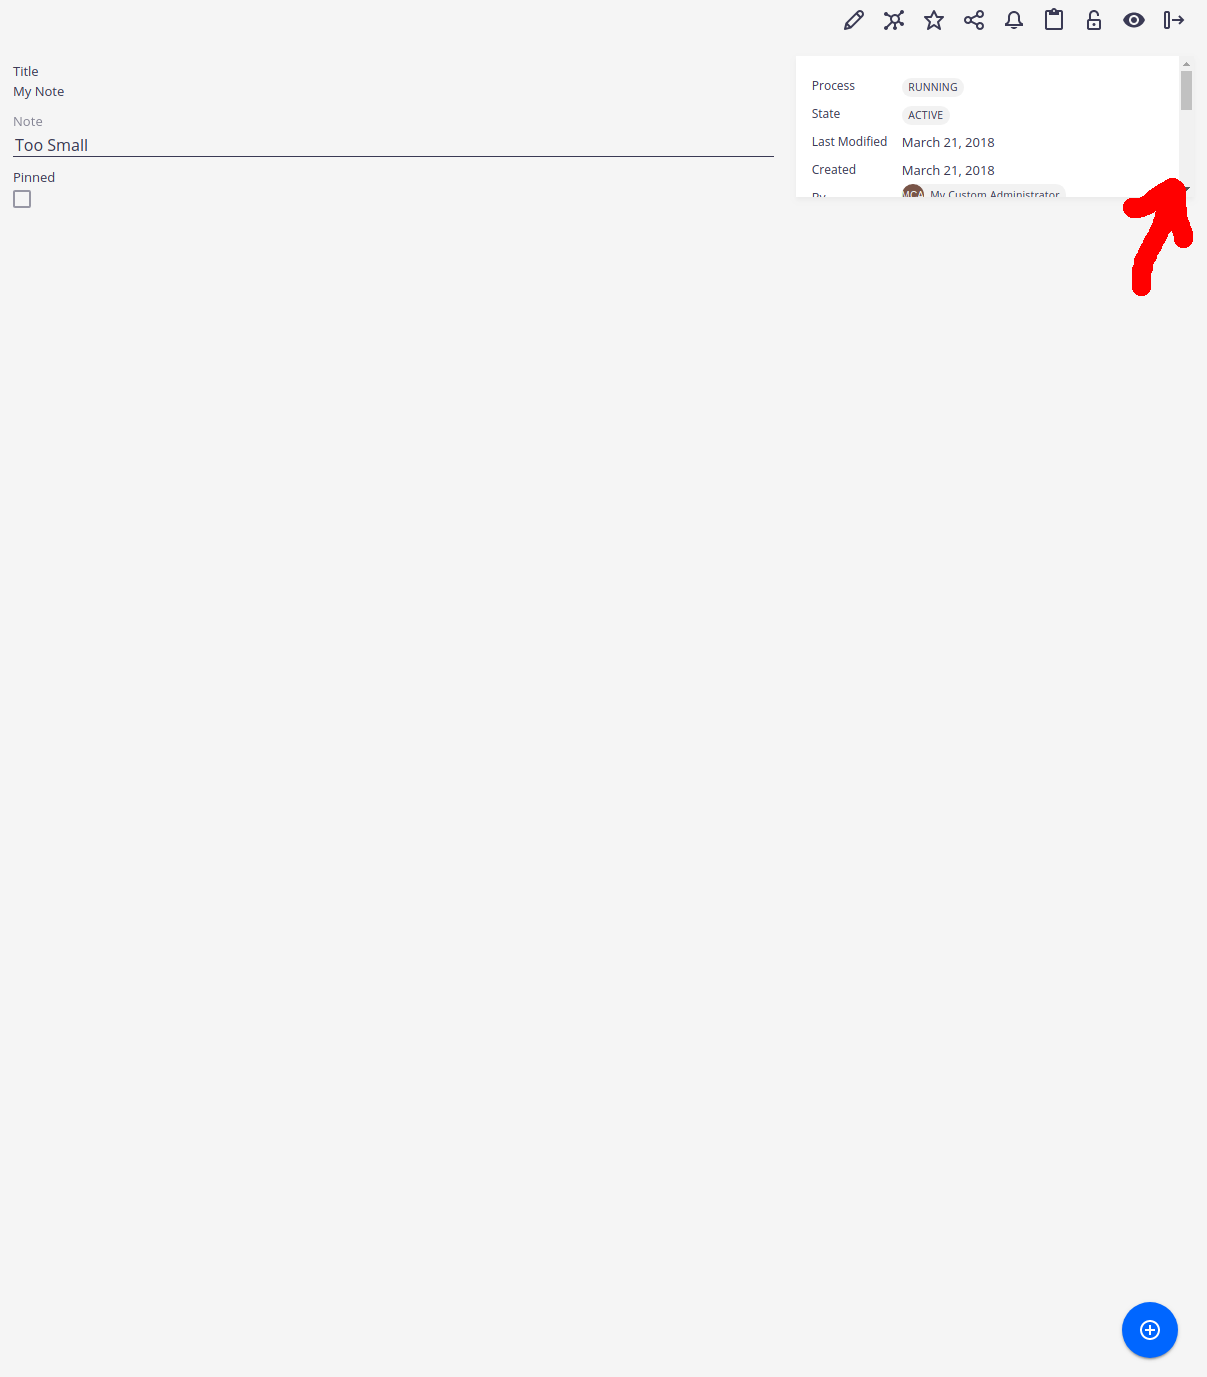 side pane shows scrollbar